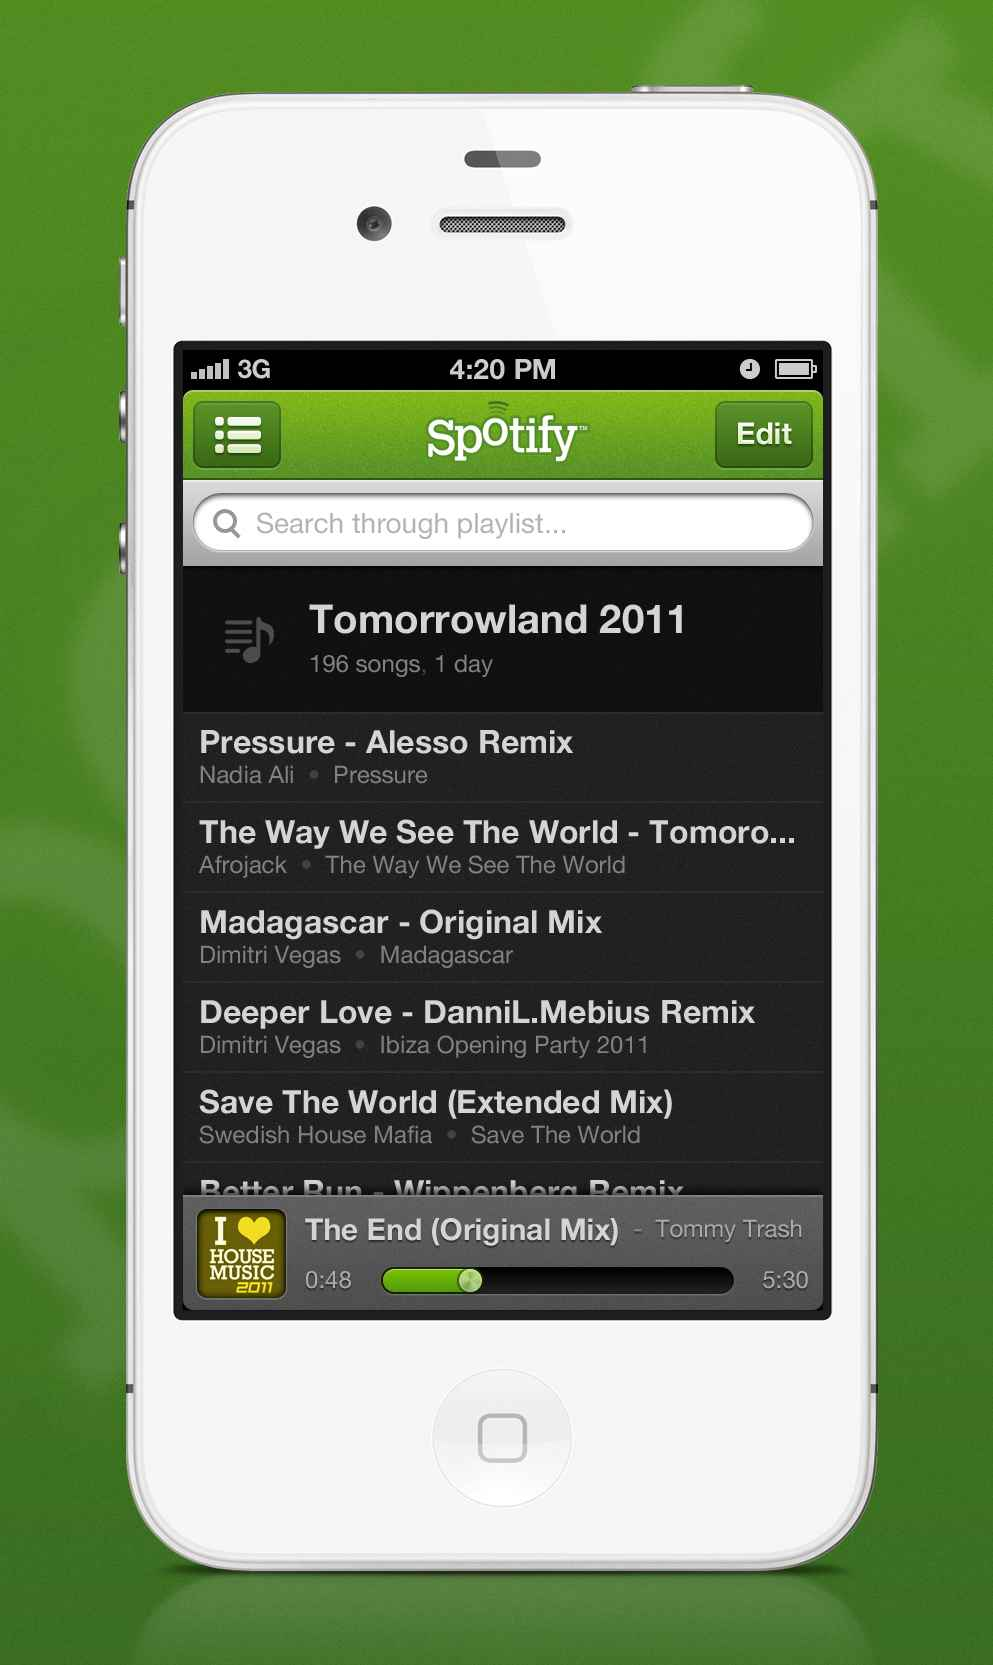 How To Get Spotify Premium On Iphone Free